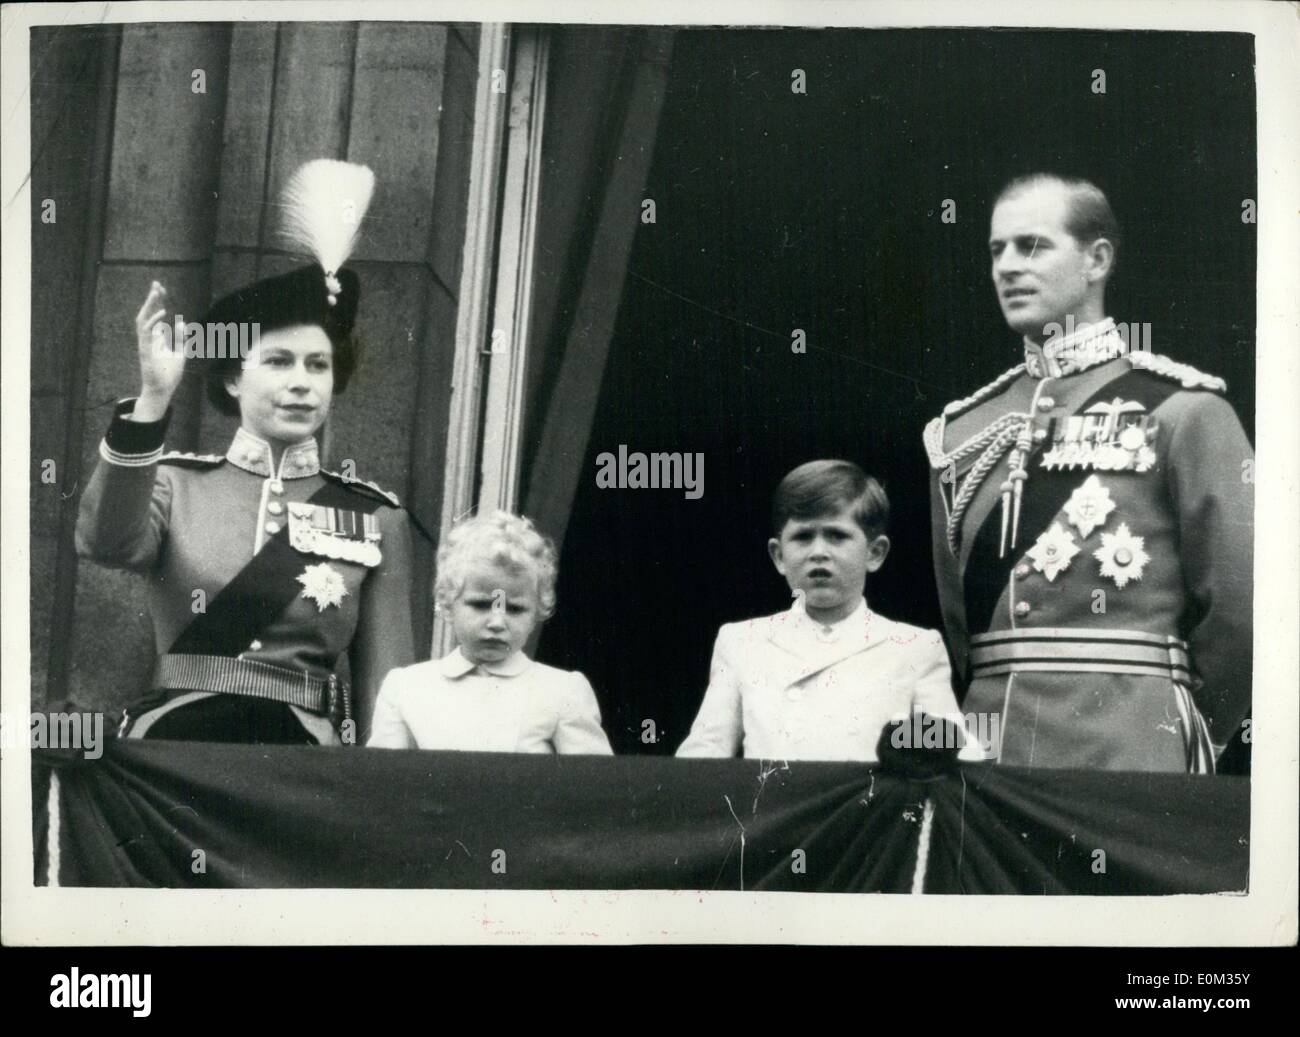 Jun. 06, 1953 - TROOPING THE COLOUR CEREMONY... SALUTING FROM THE PALACE BALCONY.. Queen Elizabeth II took the salute at the Trooping the Colour ceremony on Horse Guards Parade today. The occasion marked the Queen's official birthday. The Colour trooped was that of the First Battalion, the Grenadier Guards. The Queen wore the uniform of Col-in-Chief of the Regiment, a scarlet tunic, dark blue riding skirt and a tricorne hat with the Bold Badge and White Plume of the Grenadiers. - Stock Image